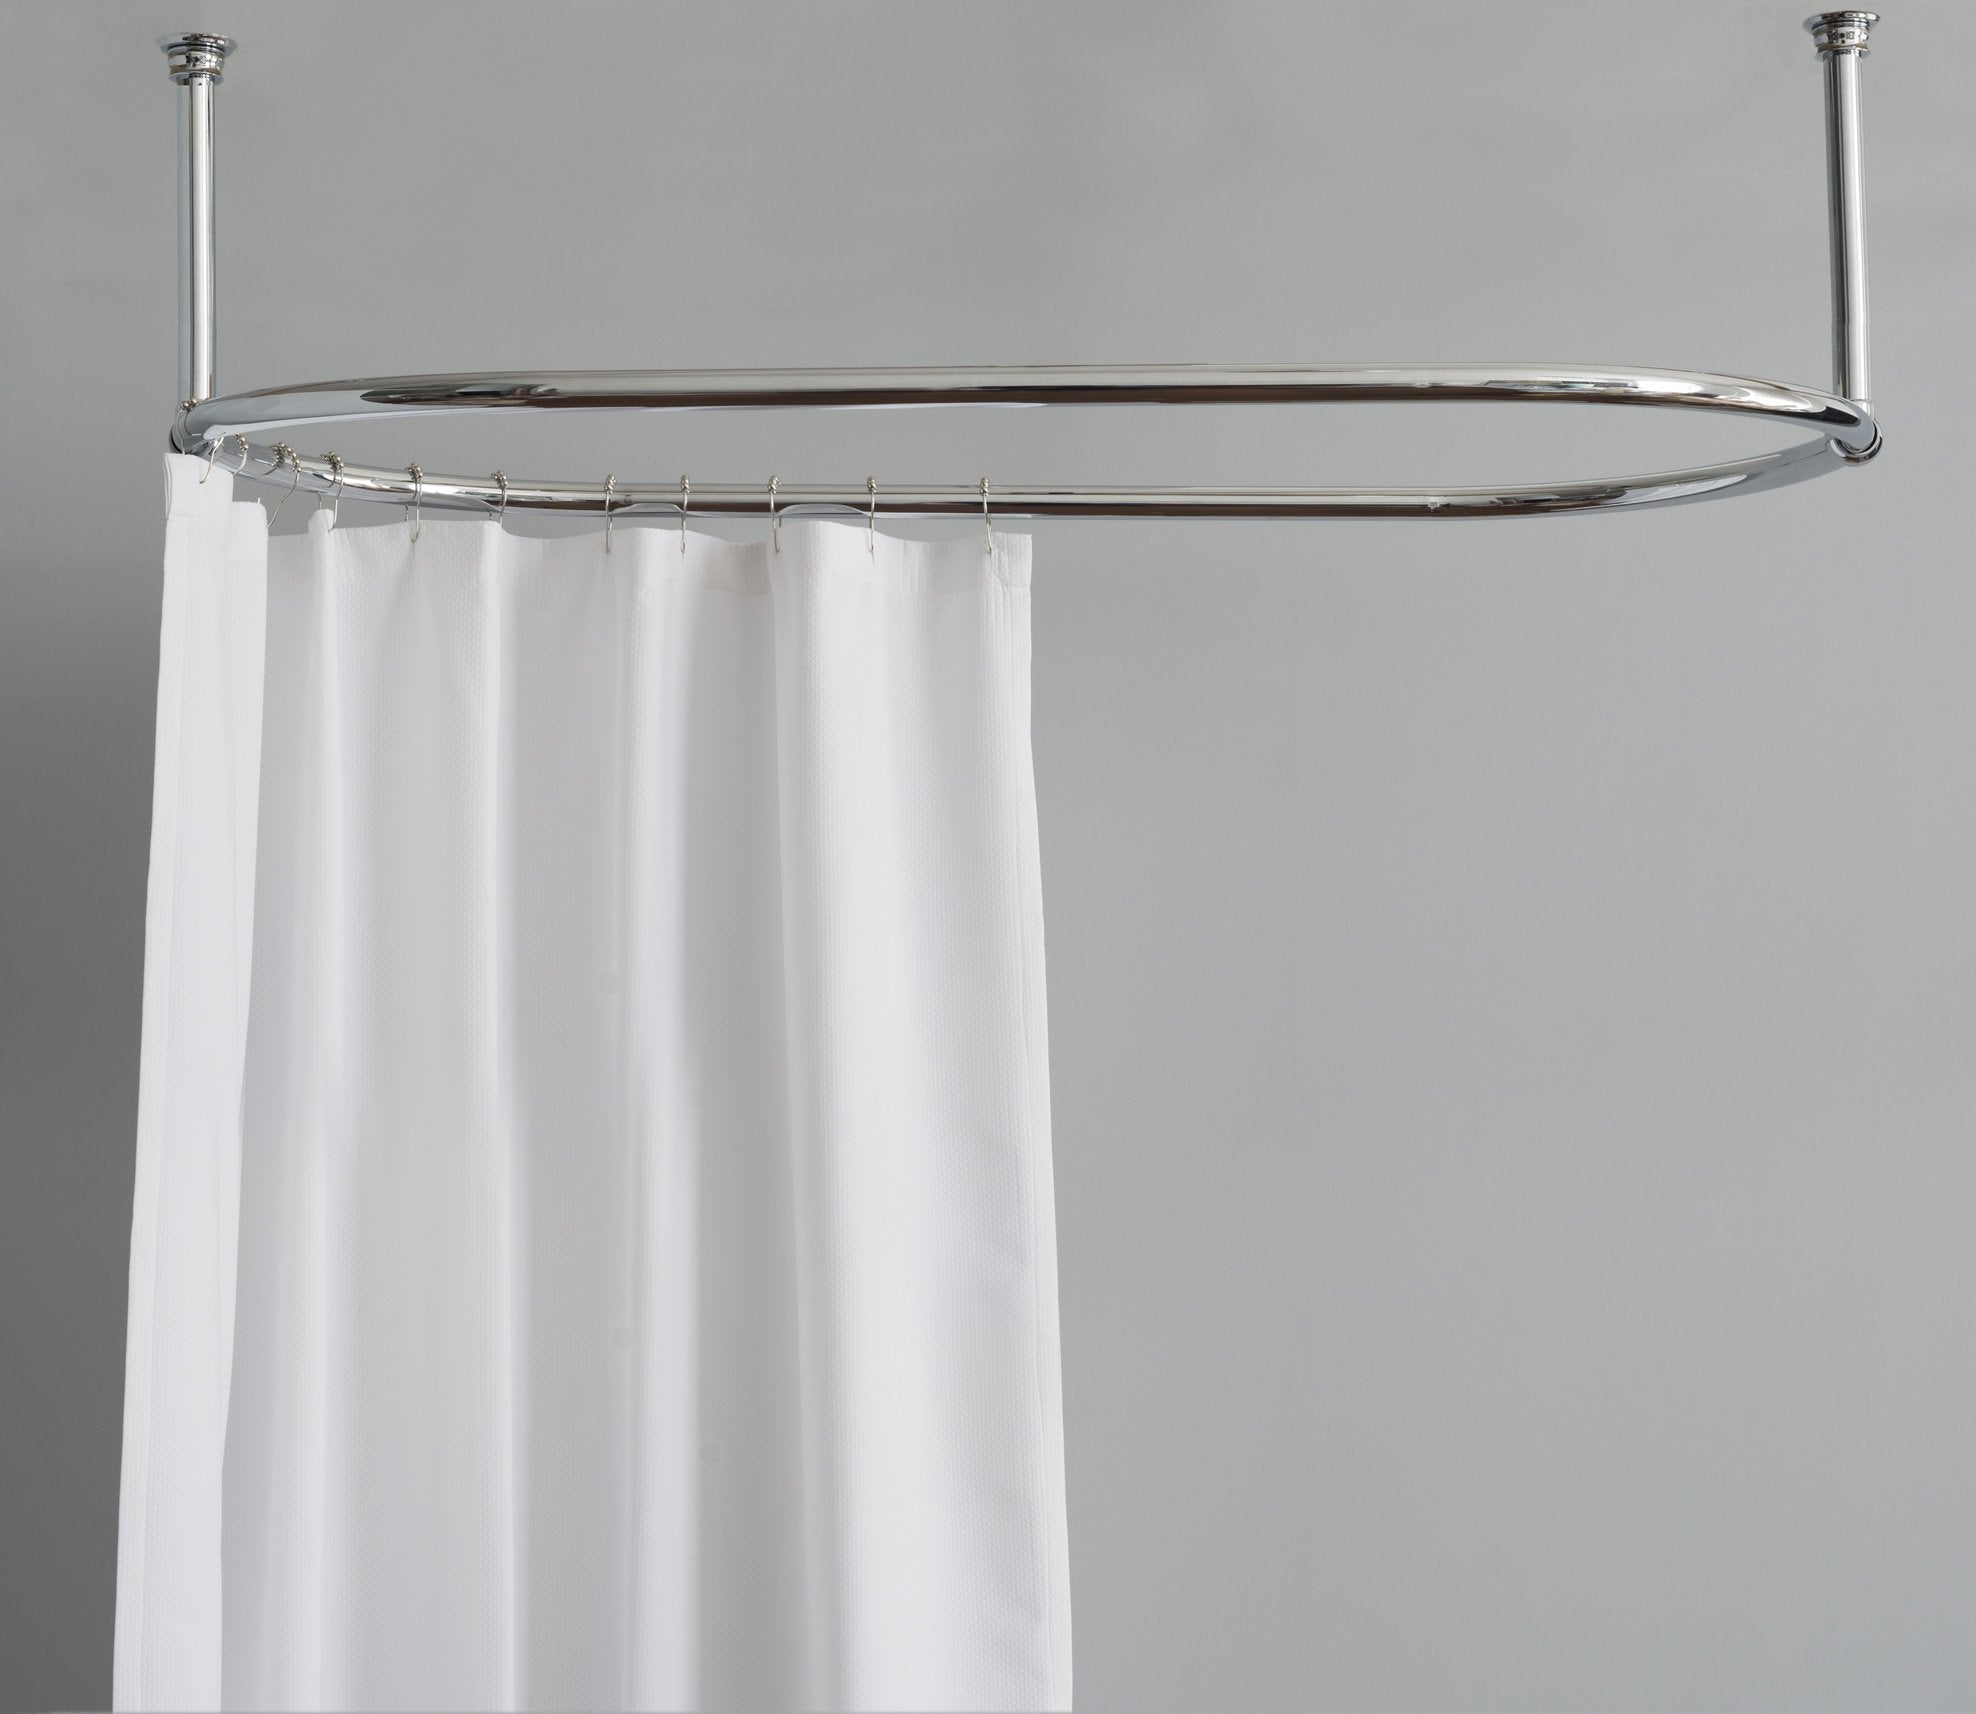 Shower Curtain Rail Oval Product Image 1